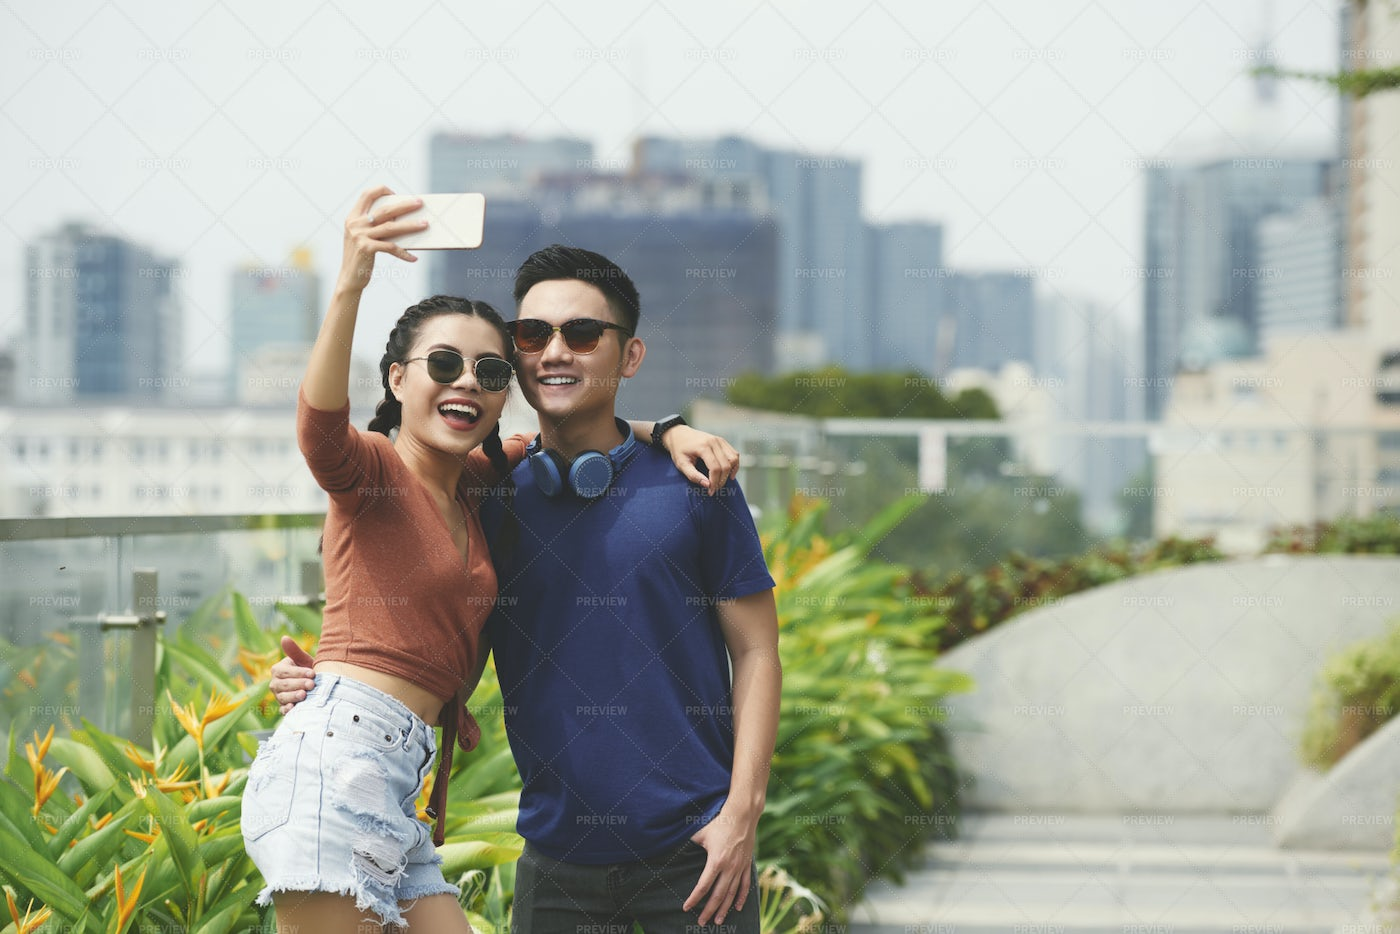 Couple Of Tourists In The City: Stock Photos